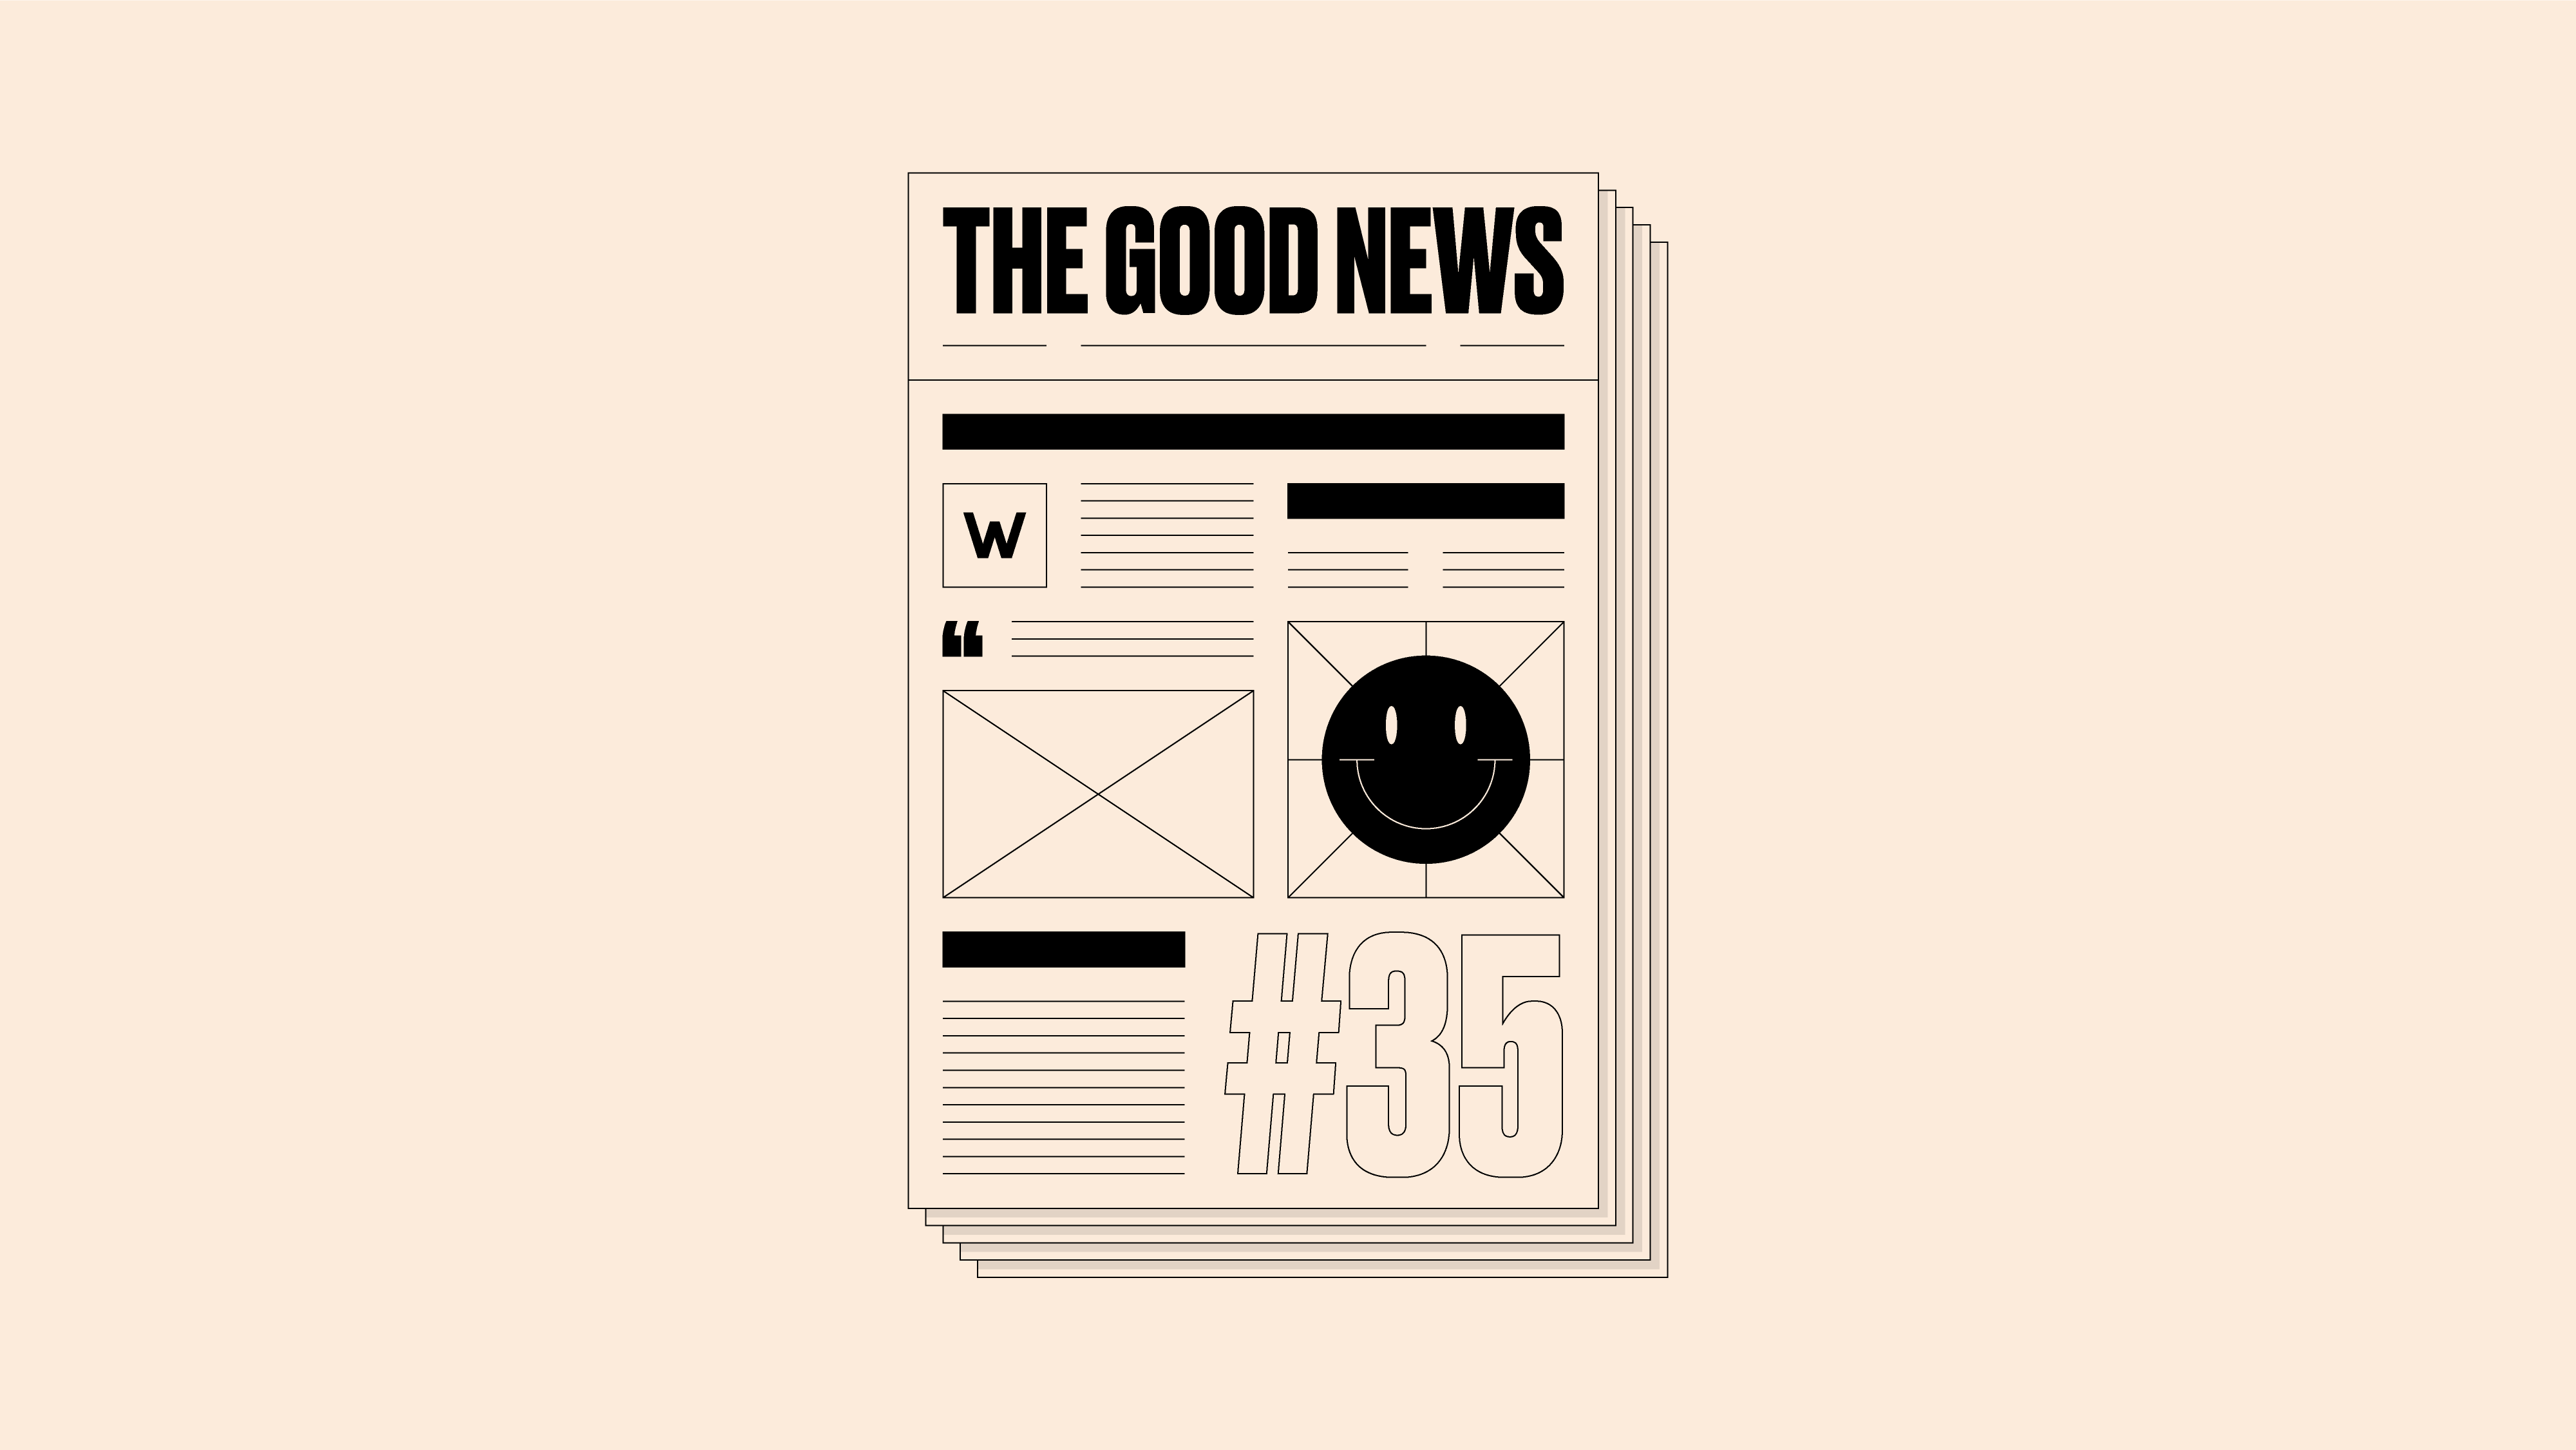 Newspaper front page, with 'The Good News #35' written on it, on a pale yellow background